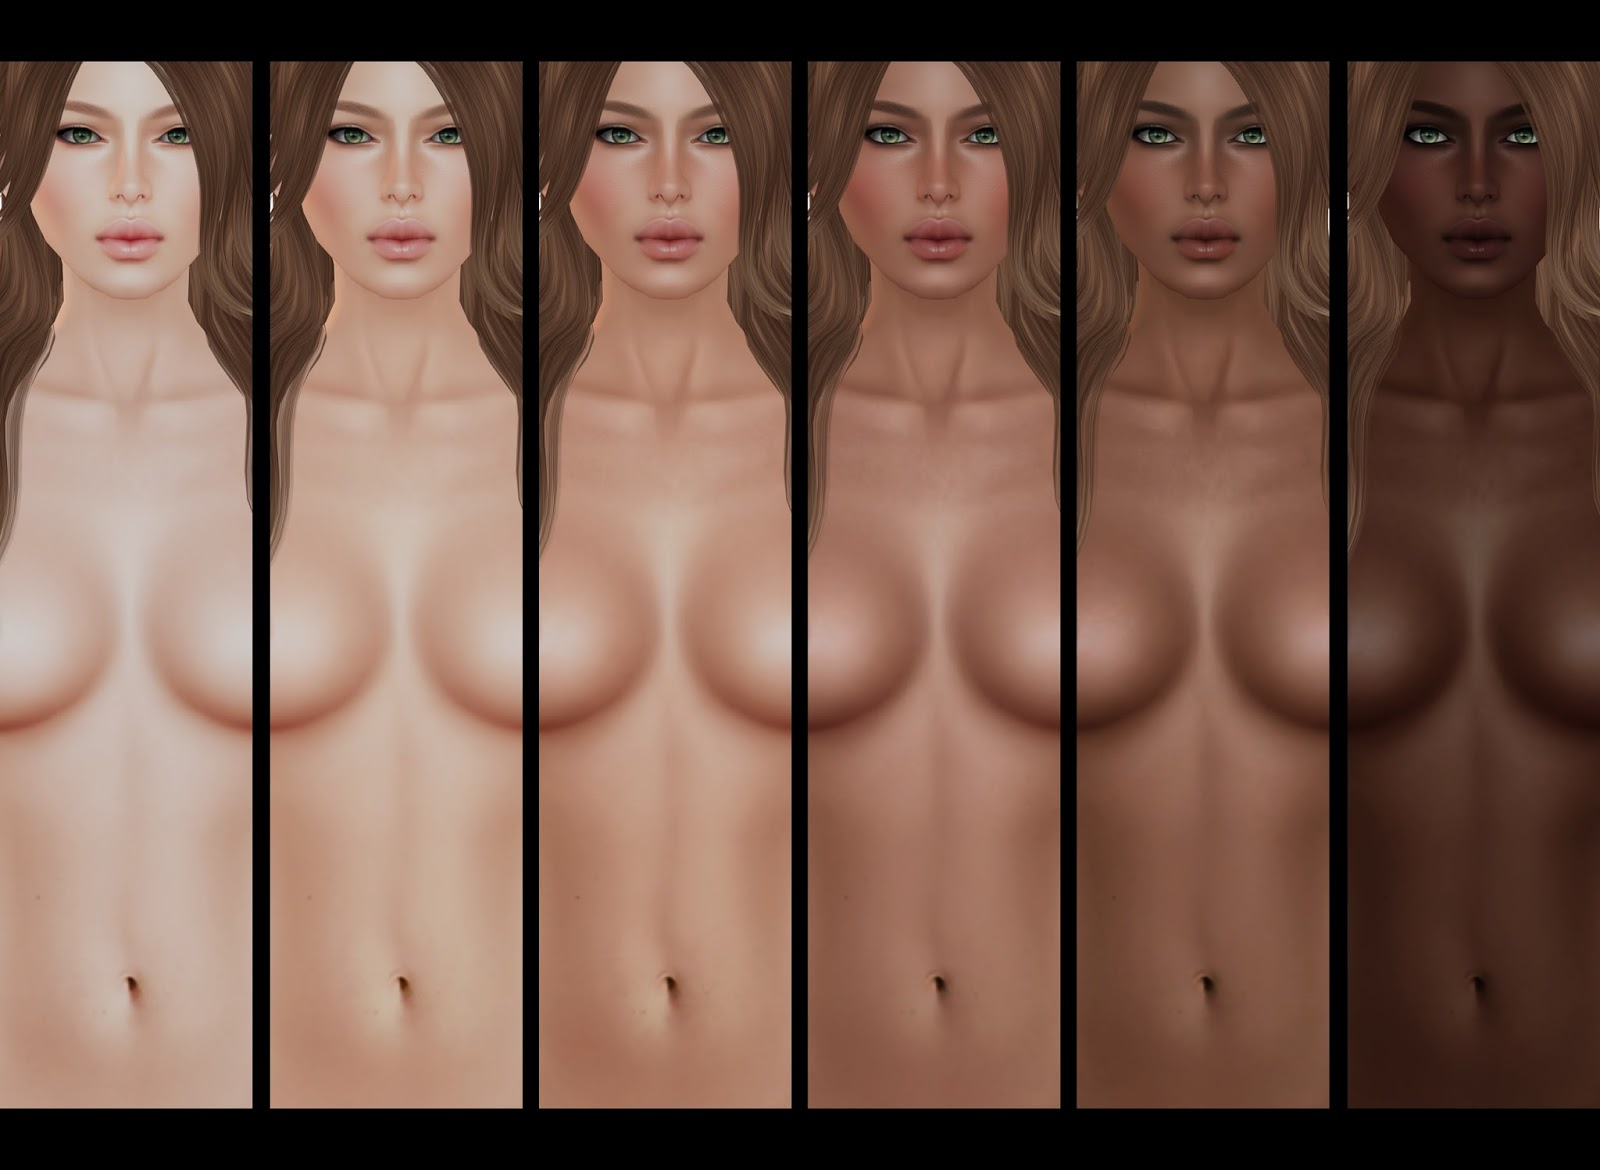 L4d witch sex erotic galleries